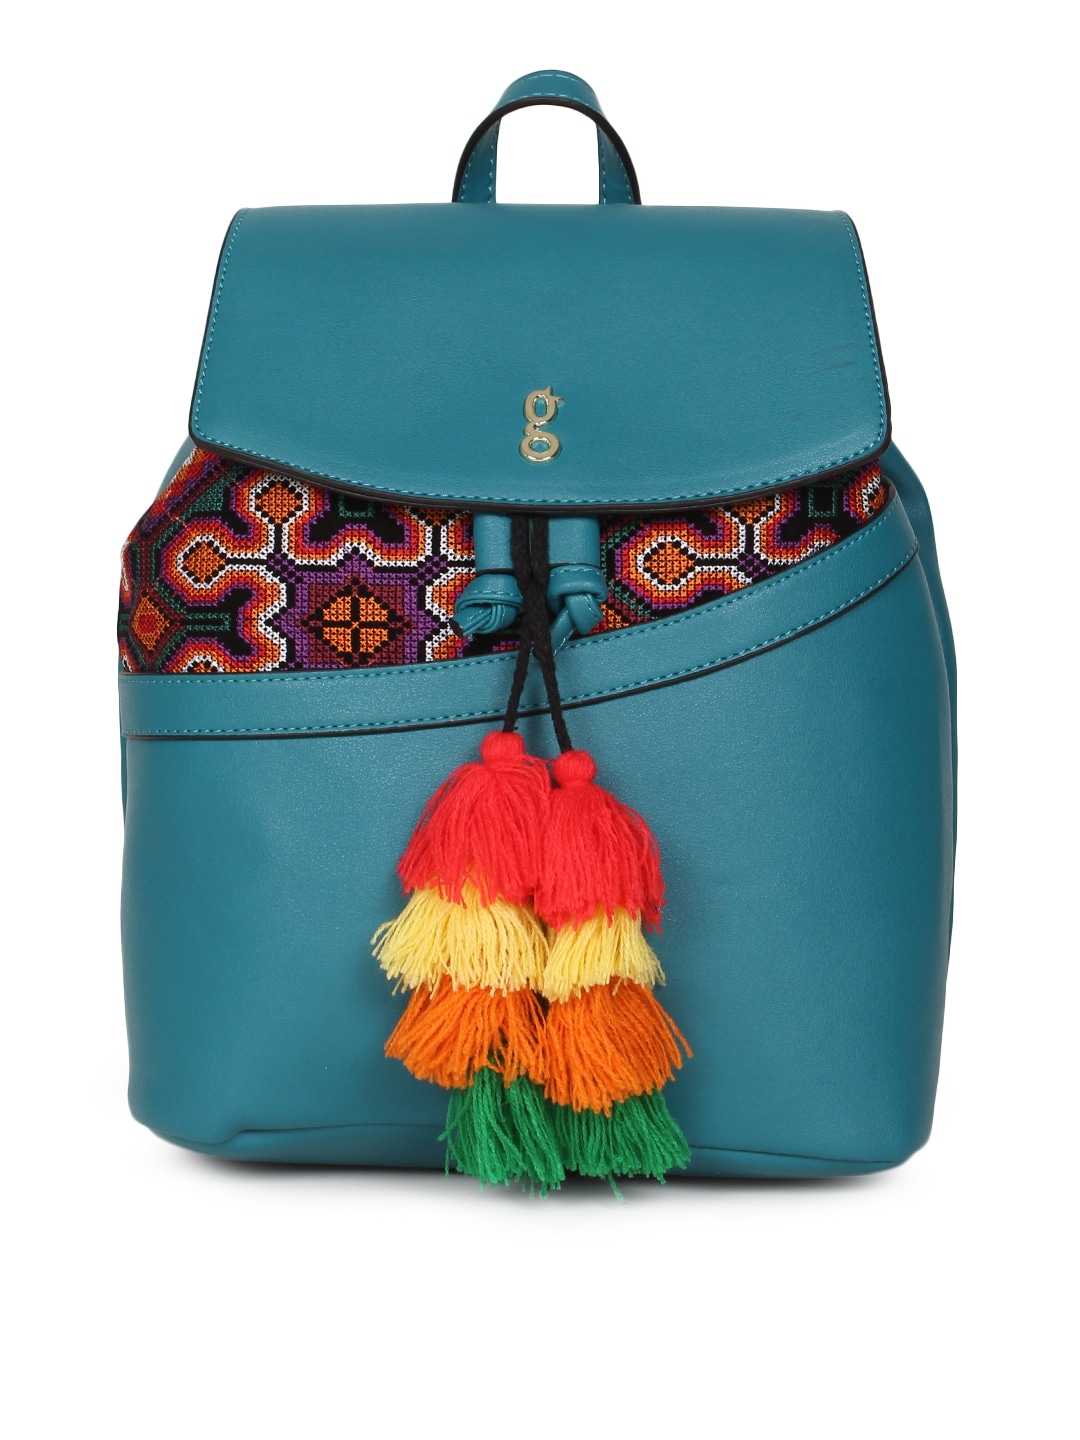 471a8201f4 Womens Accessories - Buy Womens Accessories online in India